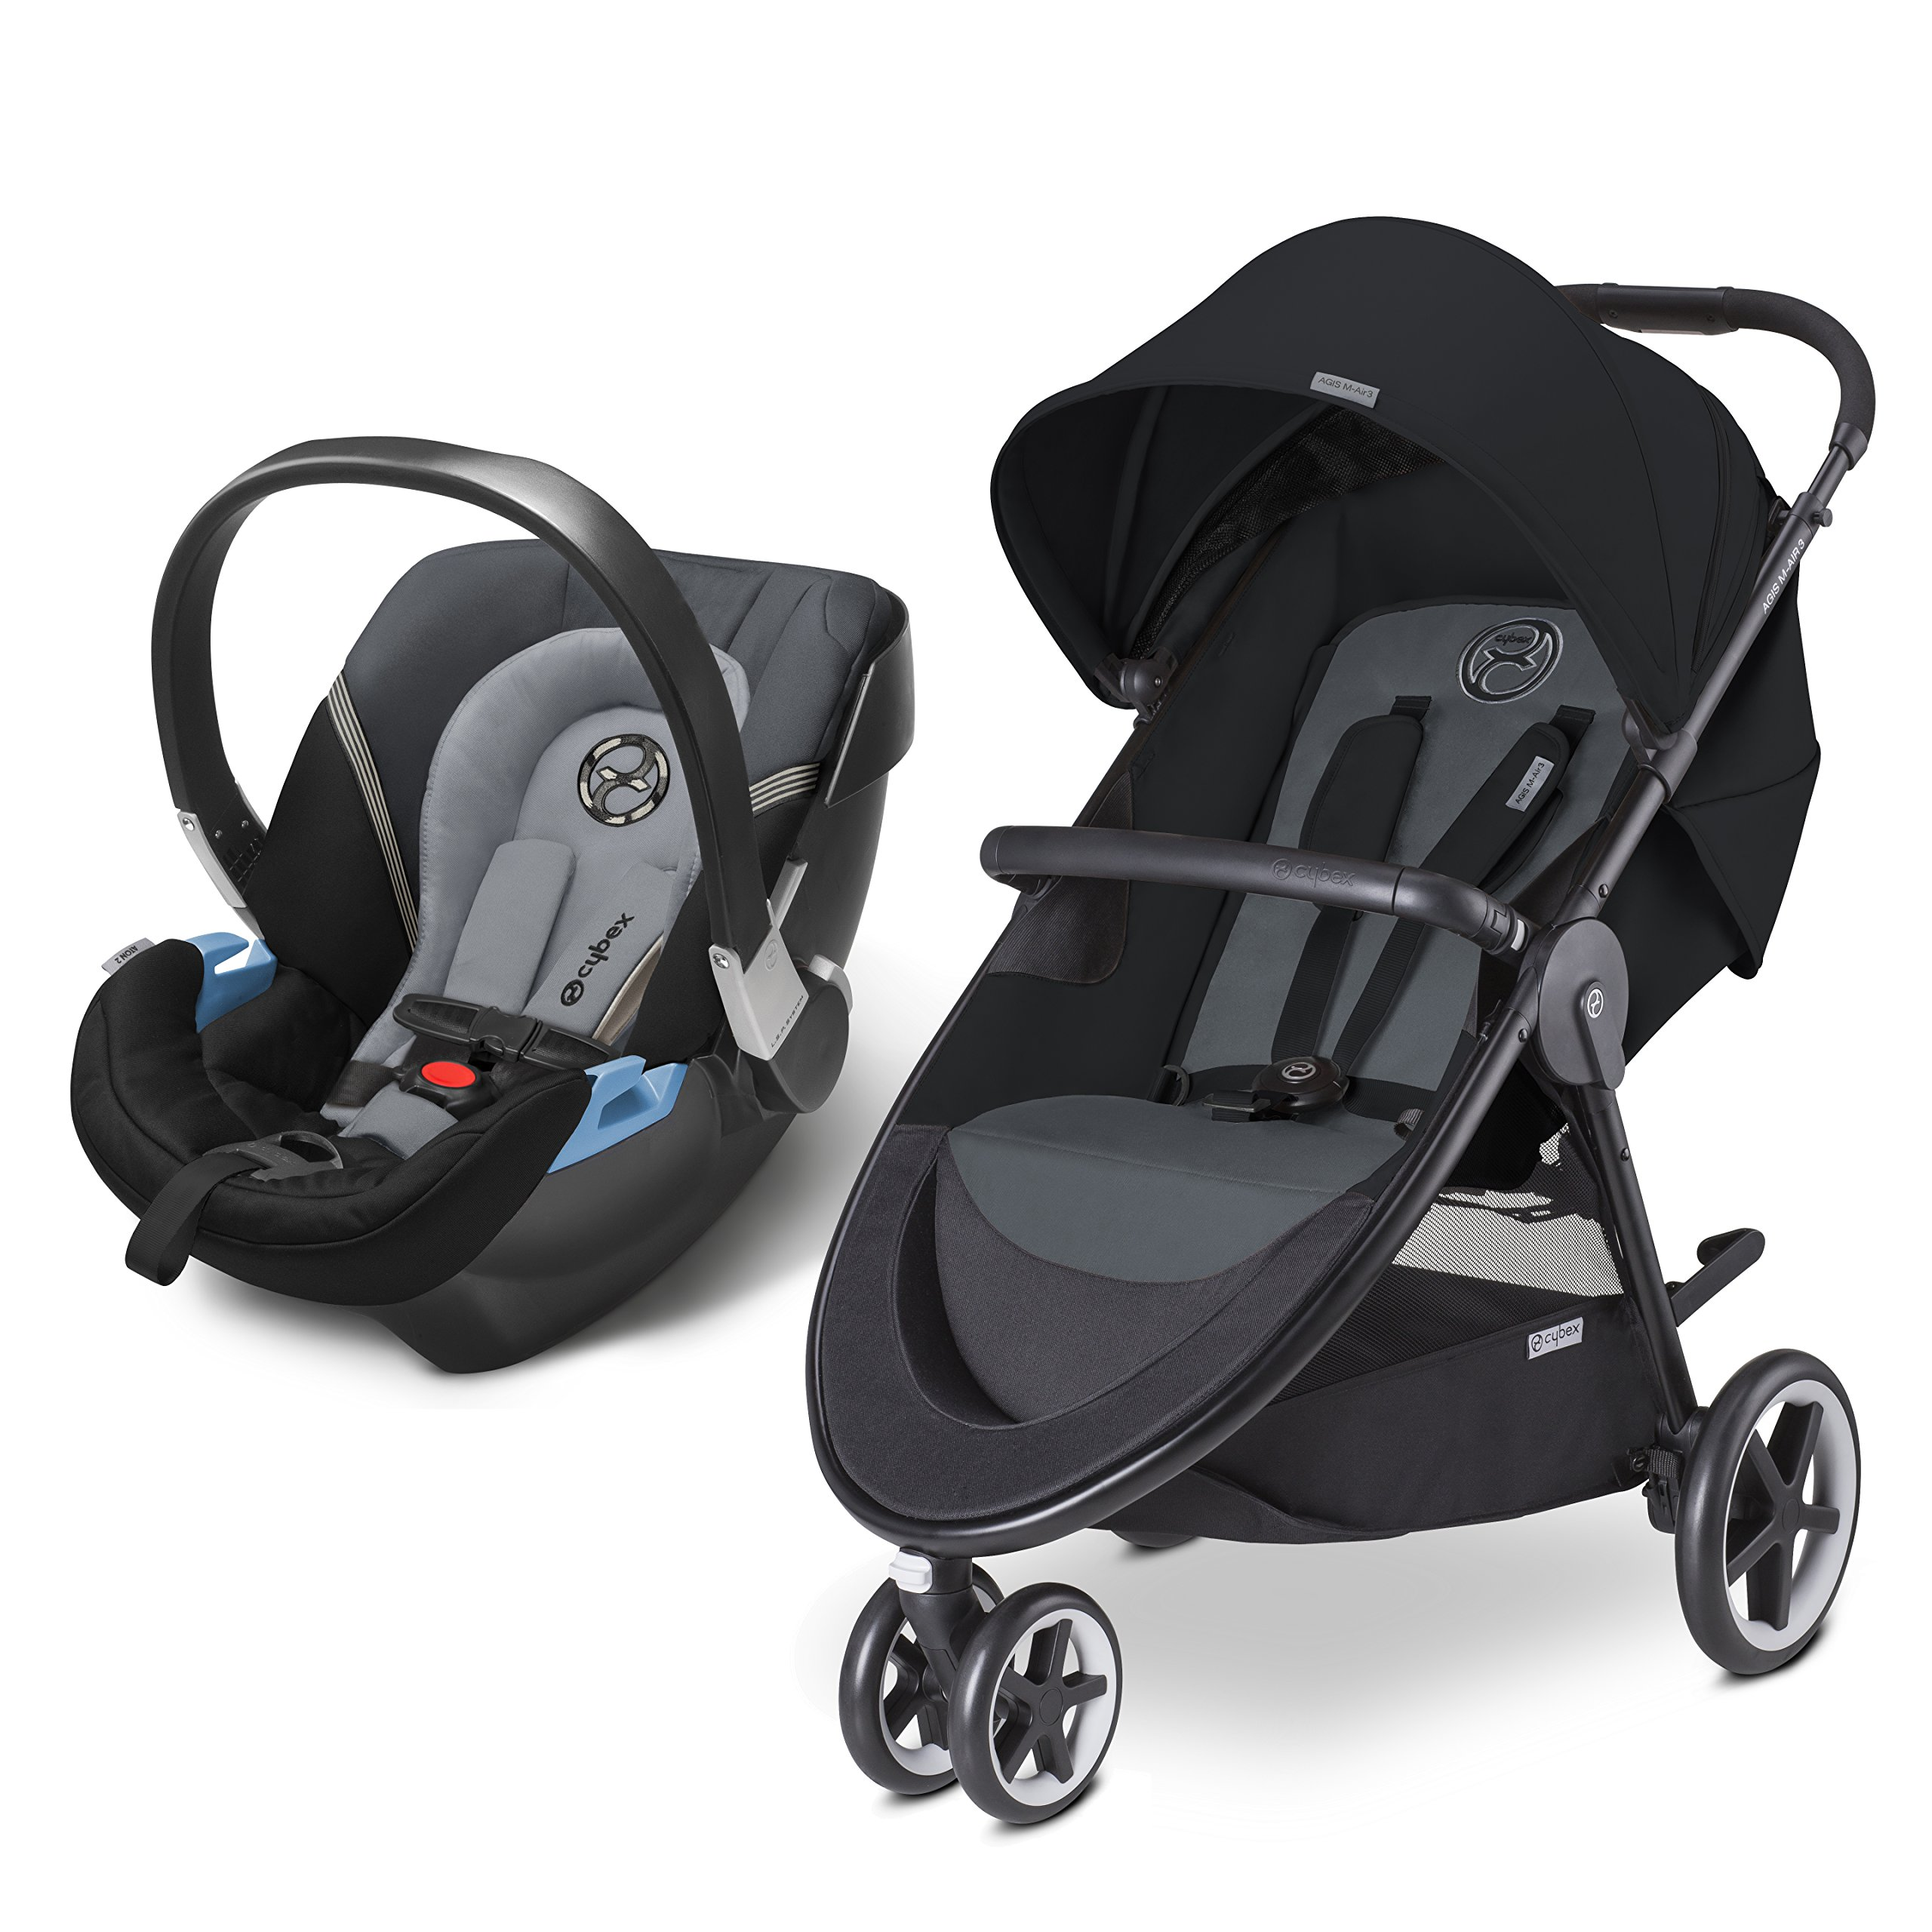 CYBEX Agis M-Air 3/Aton 2/Aton Base 2 Travel System, Moon Dust